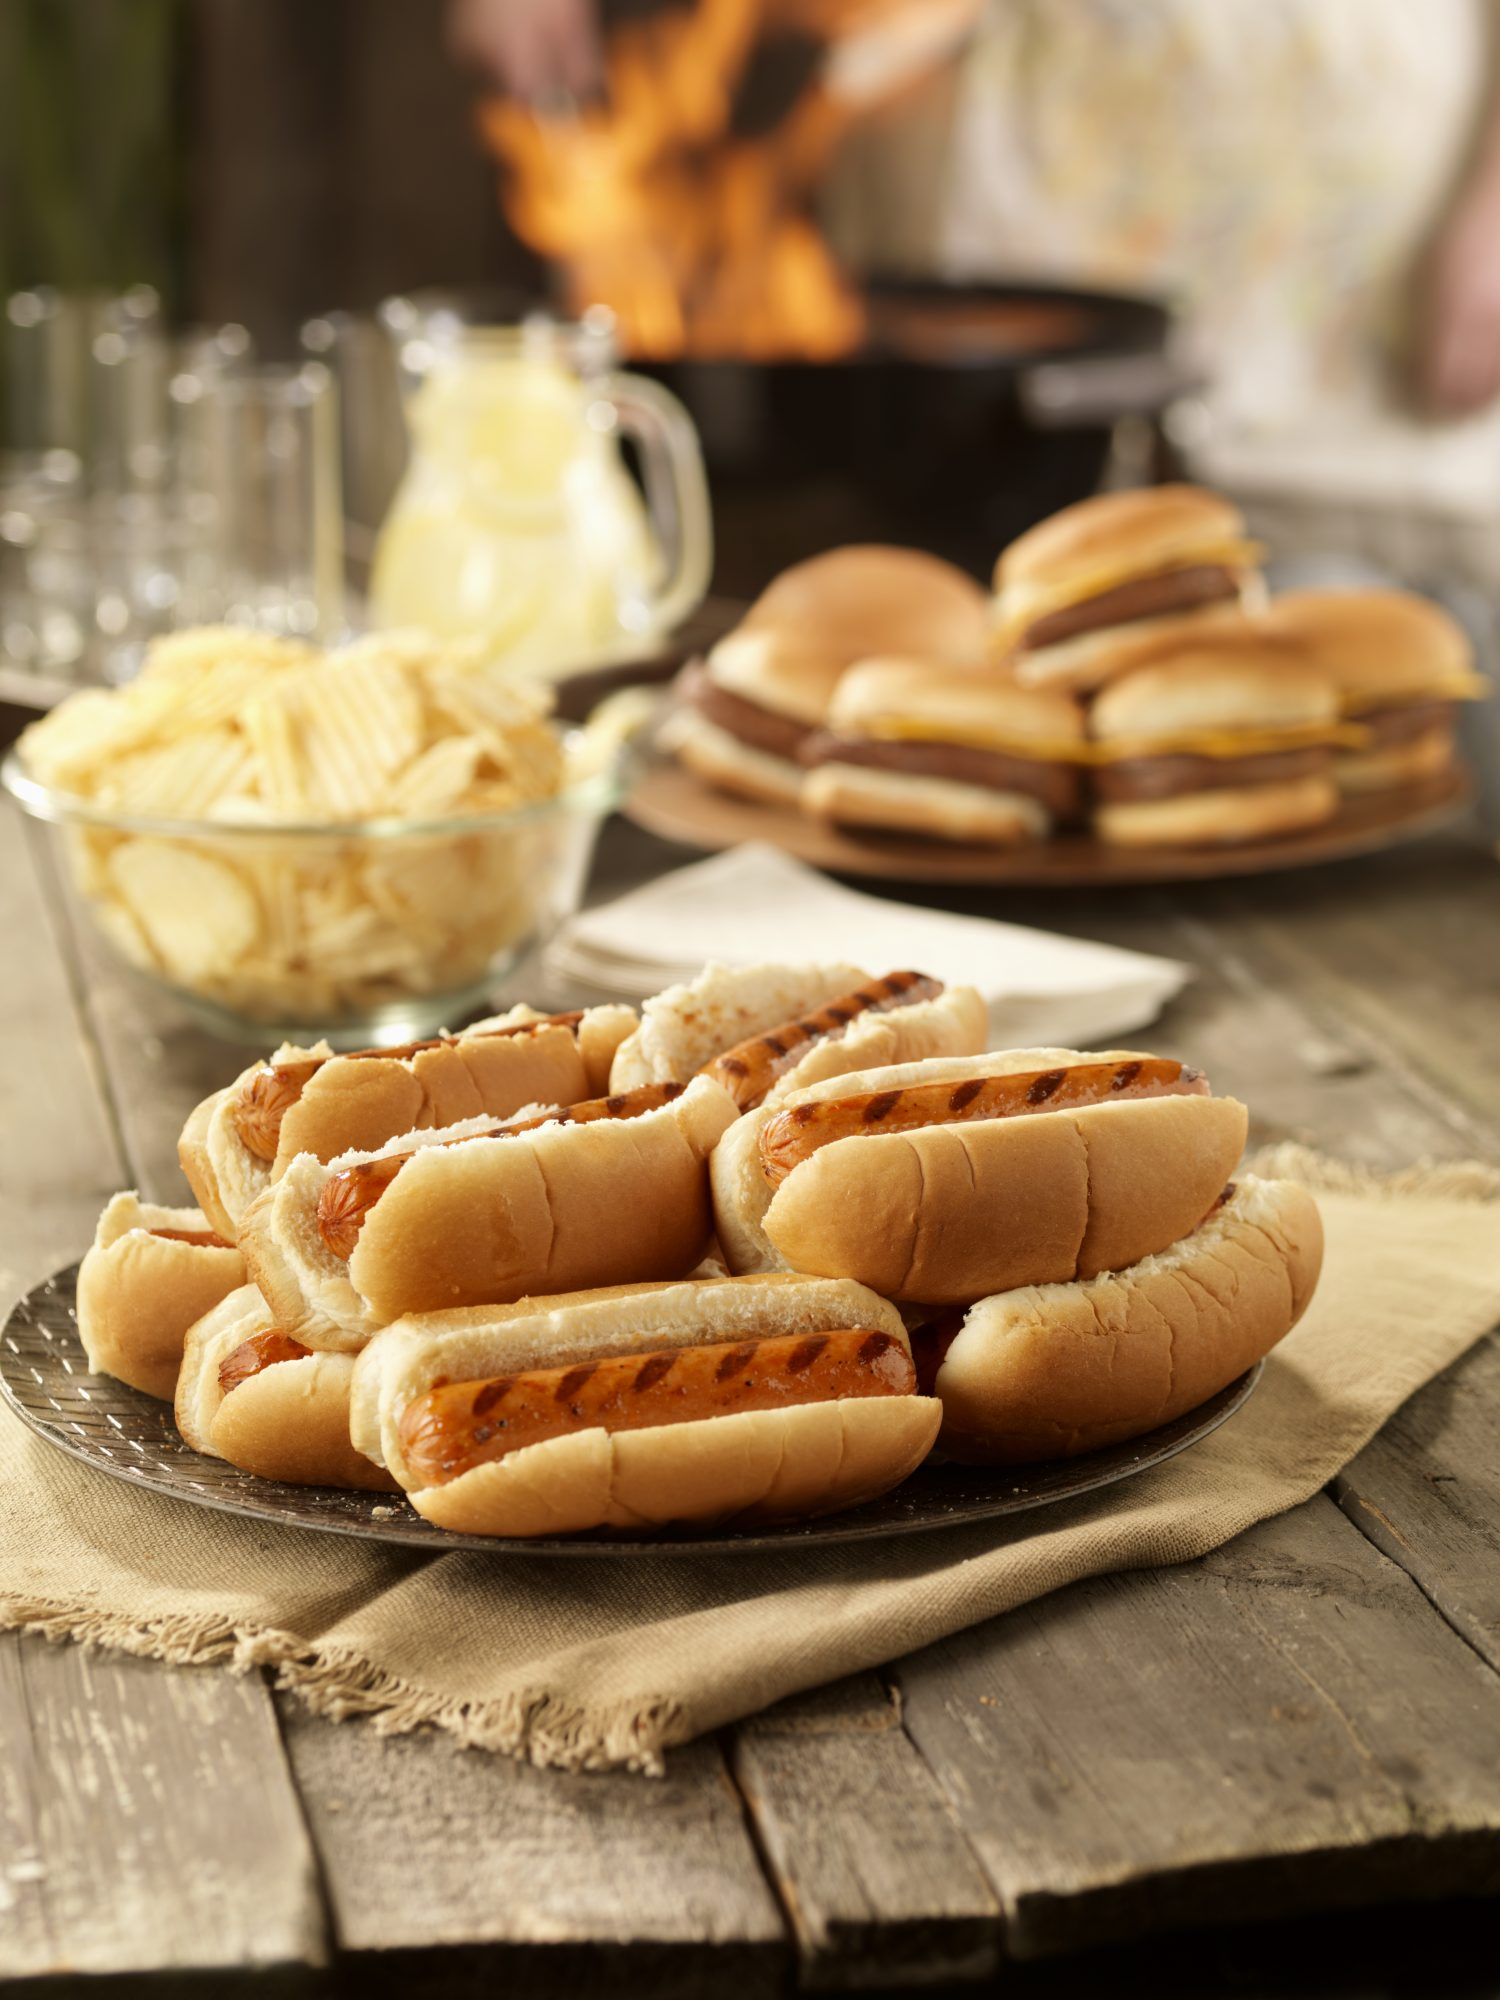 Tailgate Food Safety